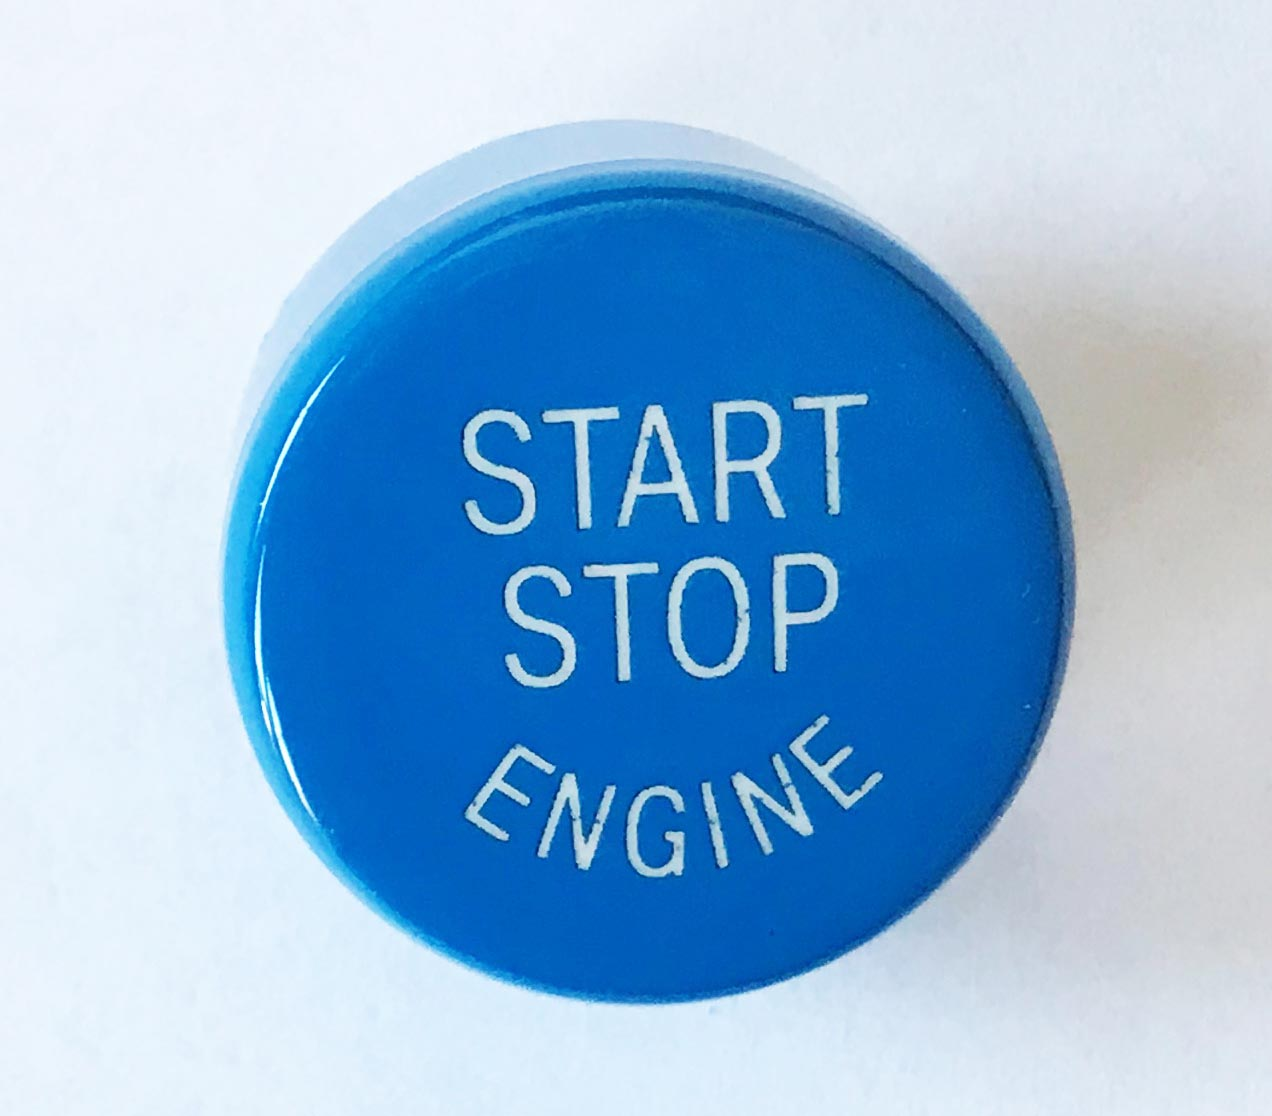 bmw-replacement-engine-start-stop-button-blue-1.jpg